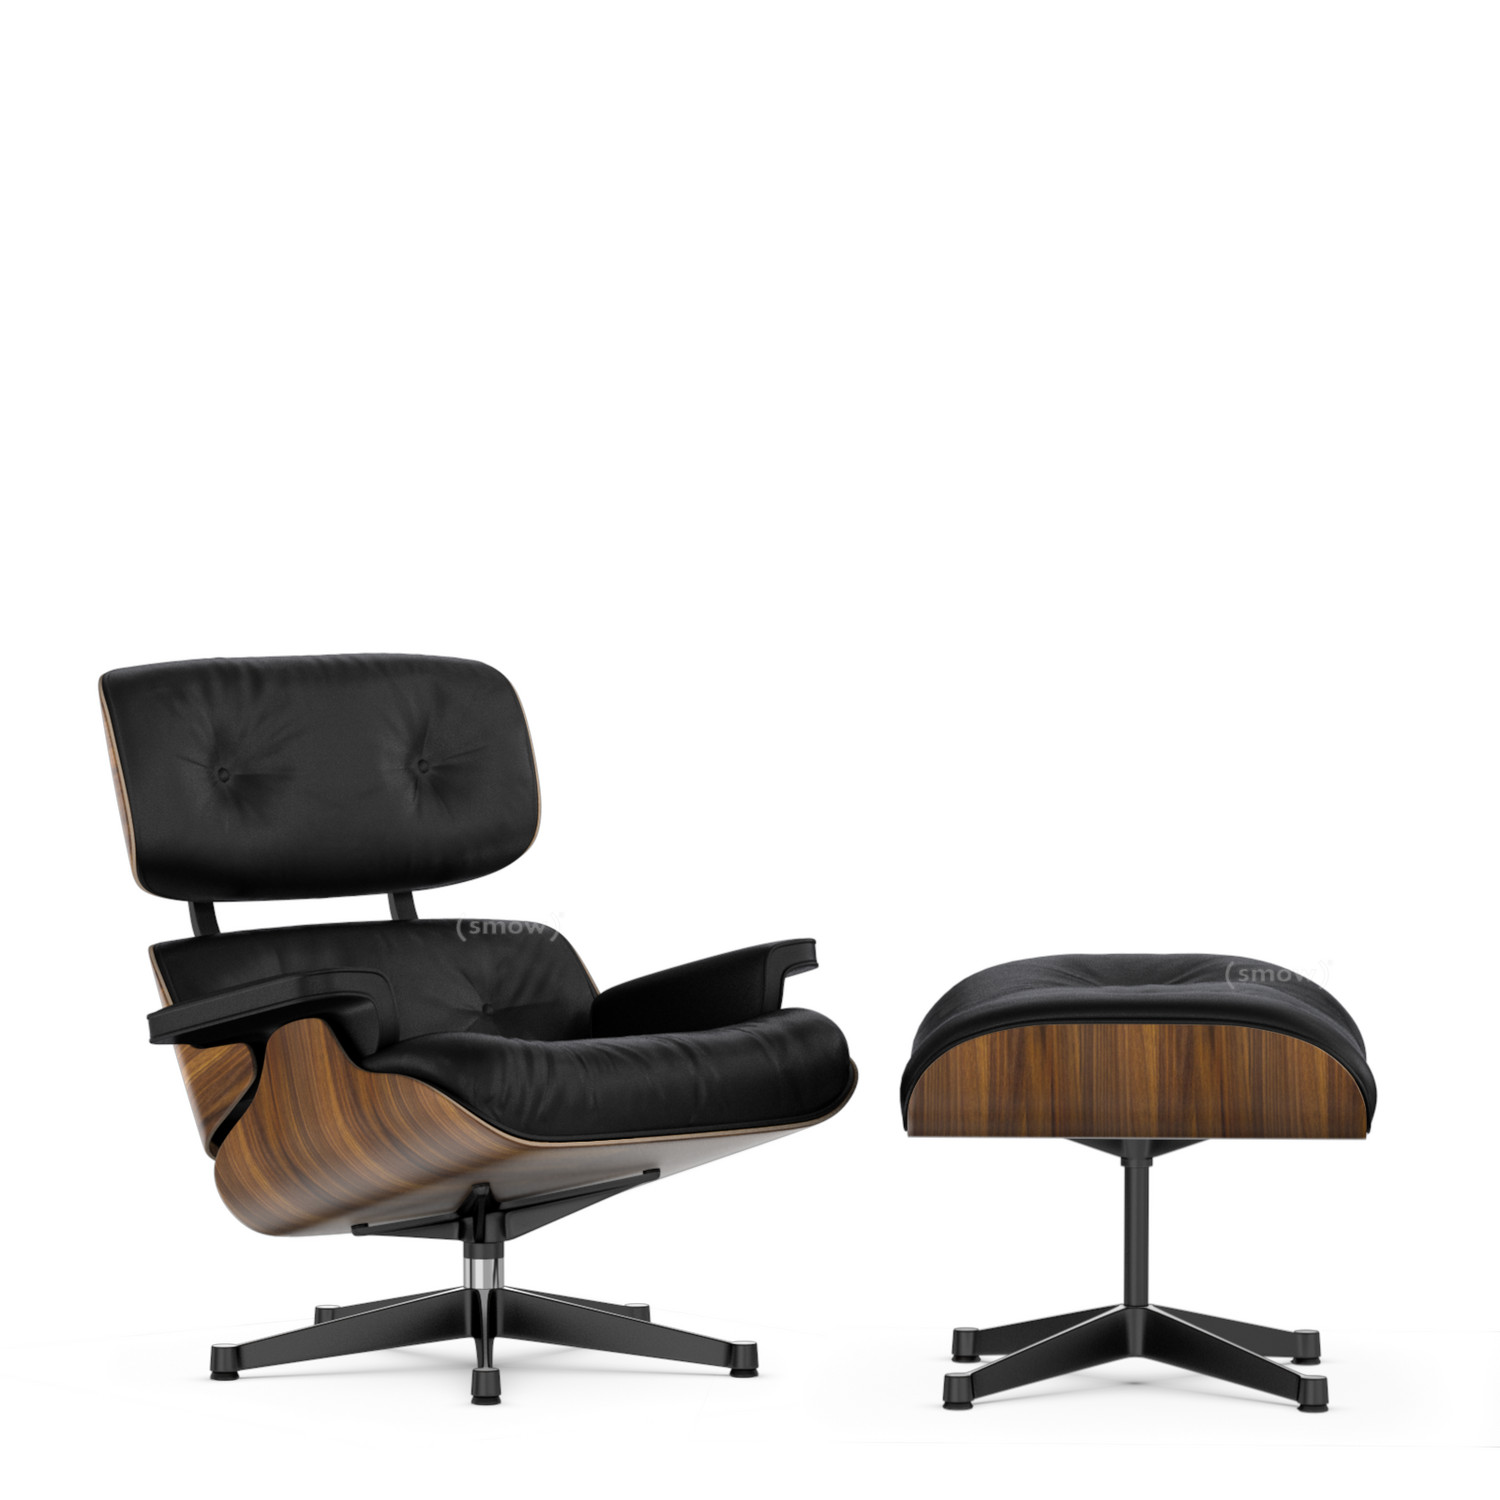 Chair Charles Eames Replica Replica Abs Charles Eames Dining Chair